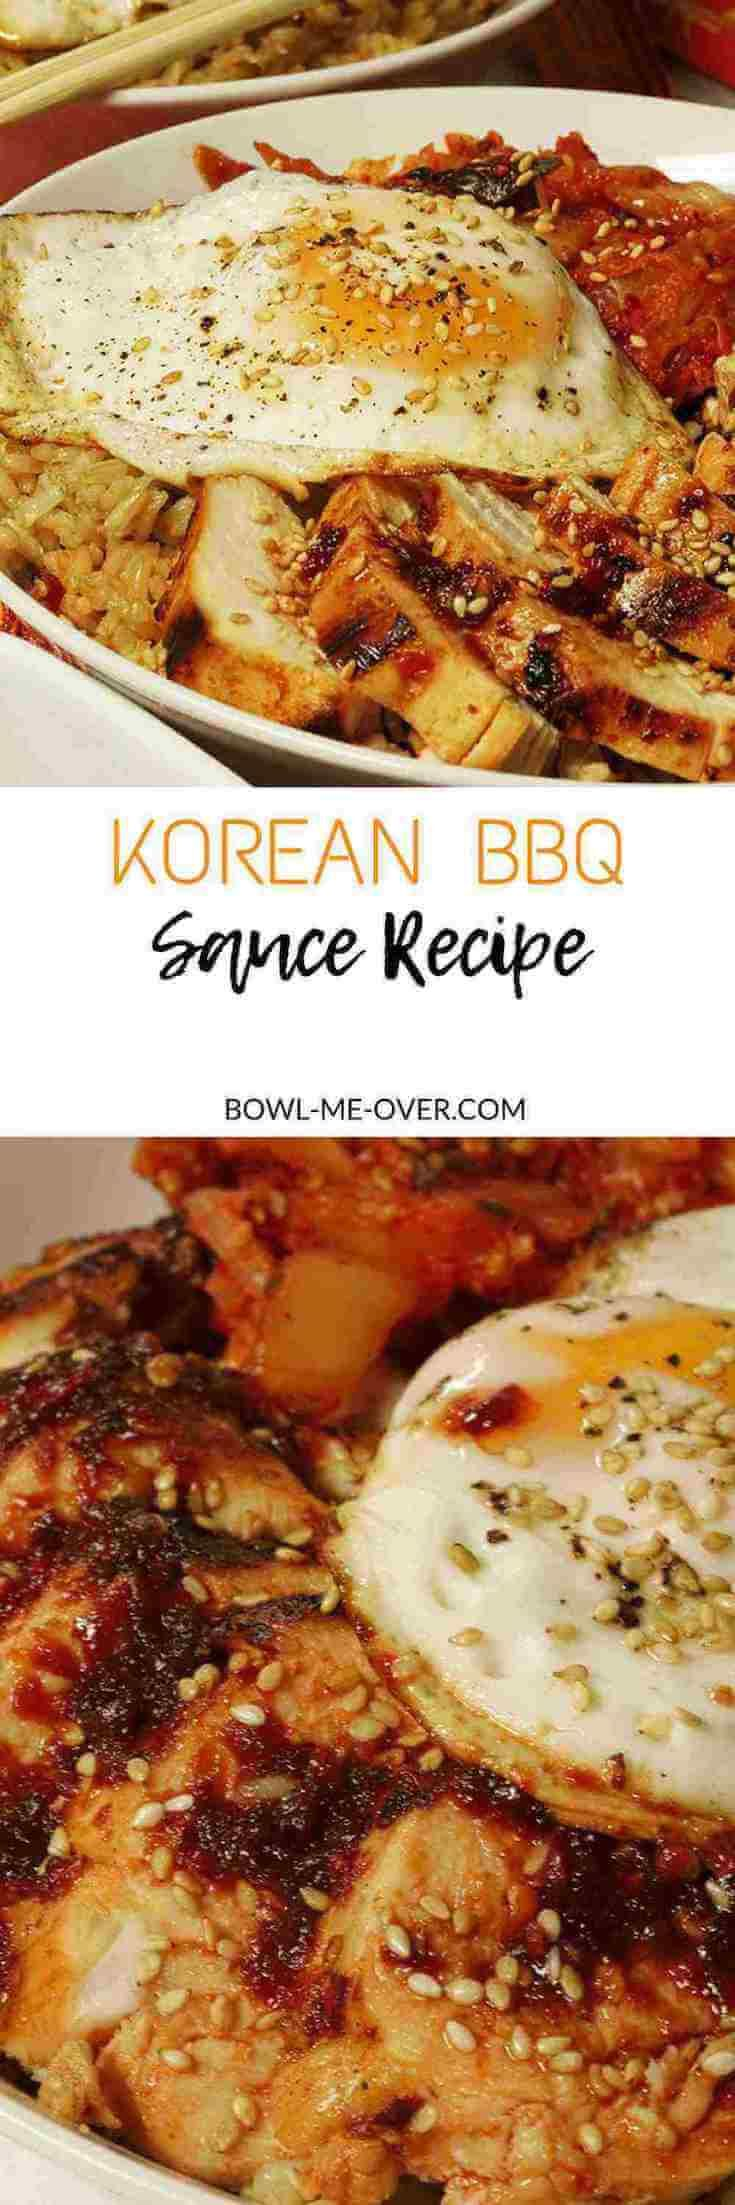 An easy Korean BBQ Sauce Recipe that is sweet and salty, spicy and savory - this is an easy recipe to make and enjoy! Marinated chicken is grilled up perfectly and served in a bowl, this is a complete meal. The bowl has rice, kimchi and chicken that is marinated in Korean bbq sauce. The whole meal is topped off with a sunny-side up egg to make a rich complete meal! via @bowlmeover #KoreanBBQSauce #AsianCuisine #BowlMeOver